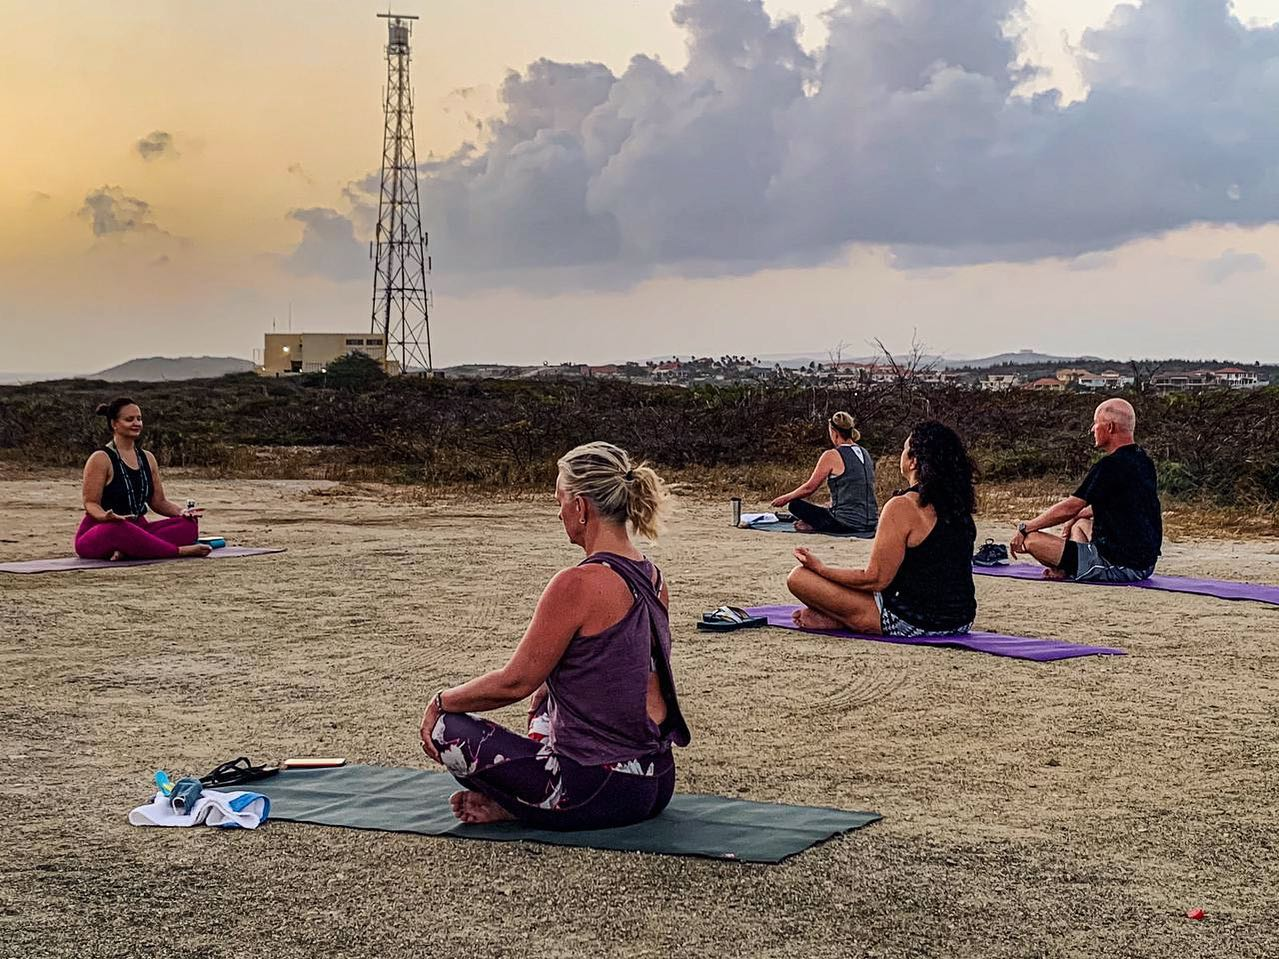 Ban relaha mama cu e 'Mother's Day Sunrise Yoga' diasabra awo